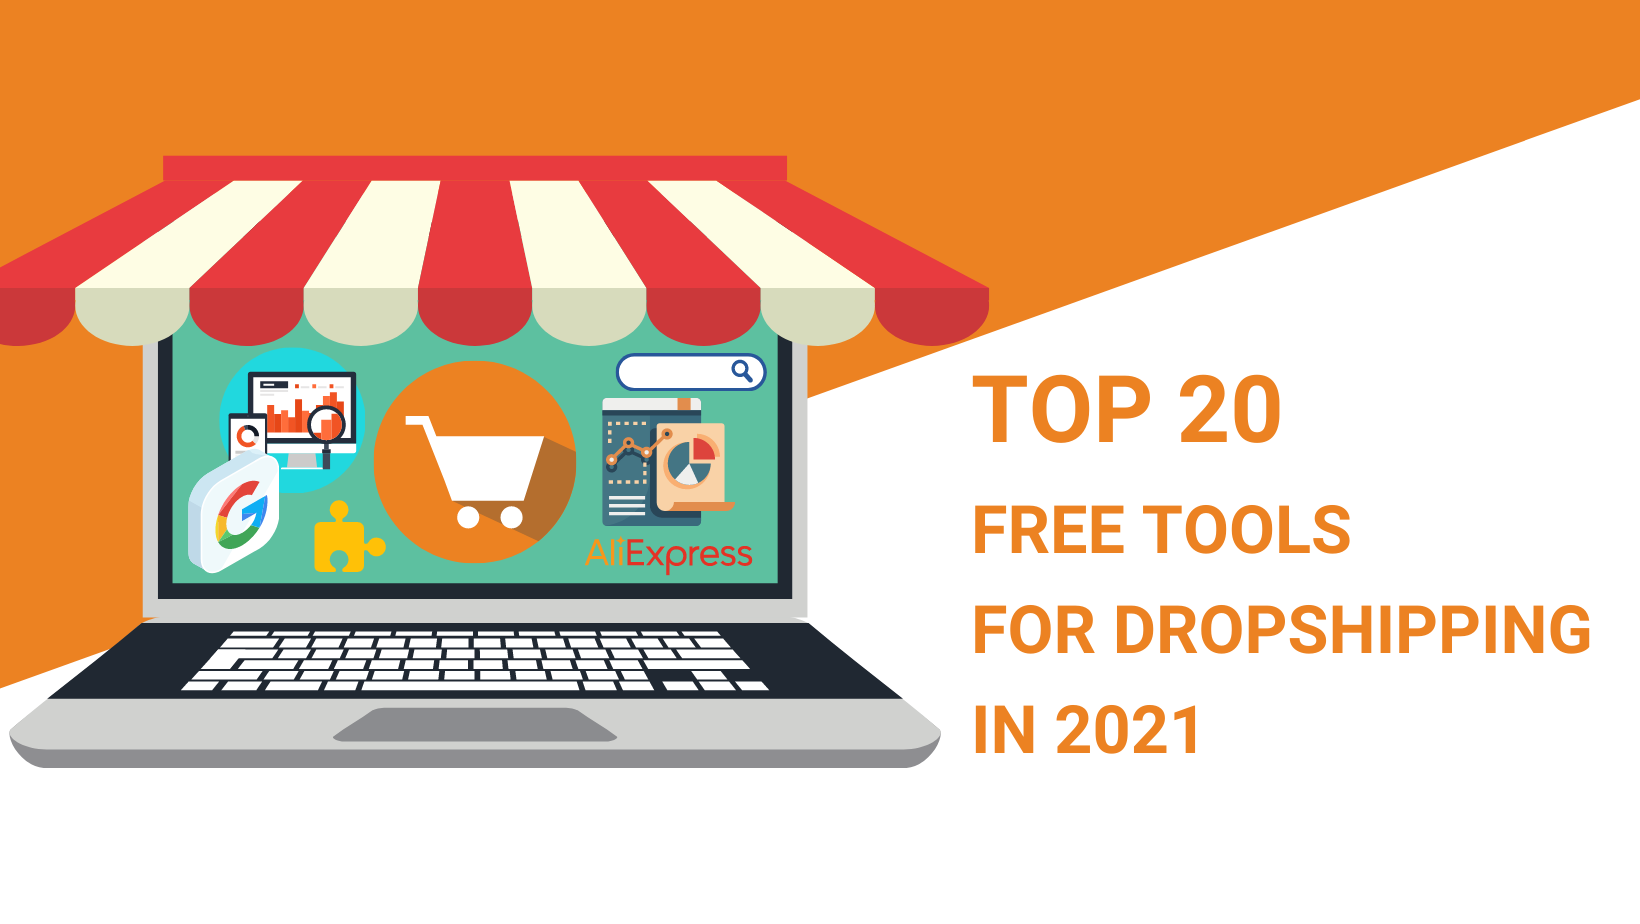 TOP 20 FREE TOOLS FOR DROPSHIPPING IN 2021